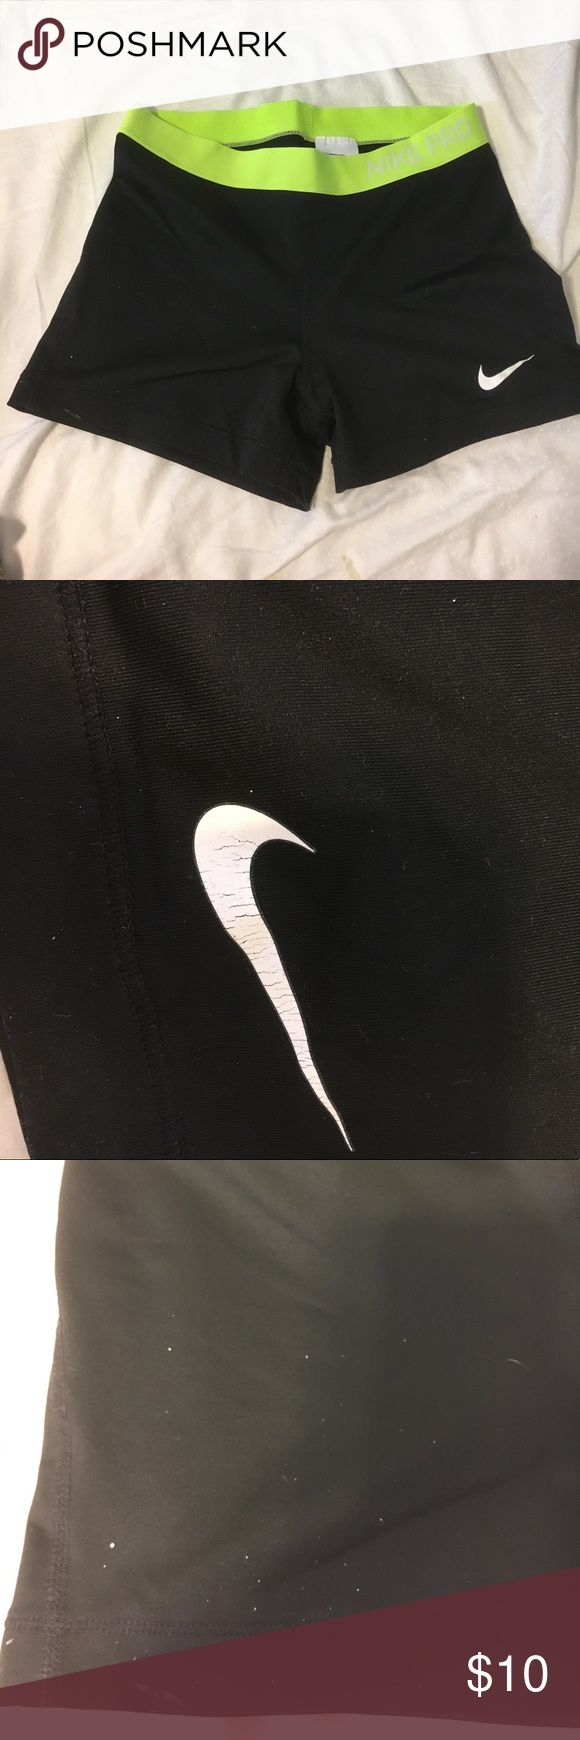 Black Nike shorts Black Nike running shorts. I spray painted a chair while wearing these so theres a few white paint dots here and there Nike Shorts